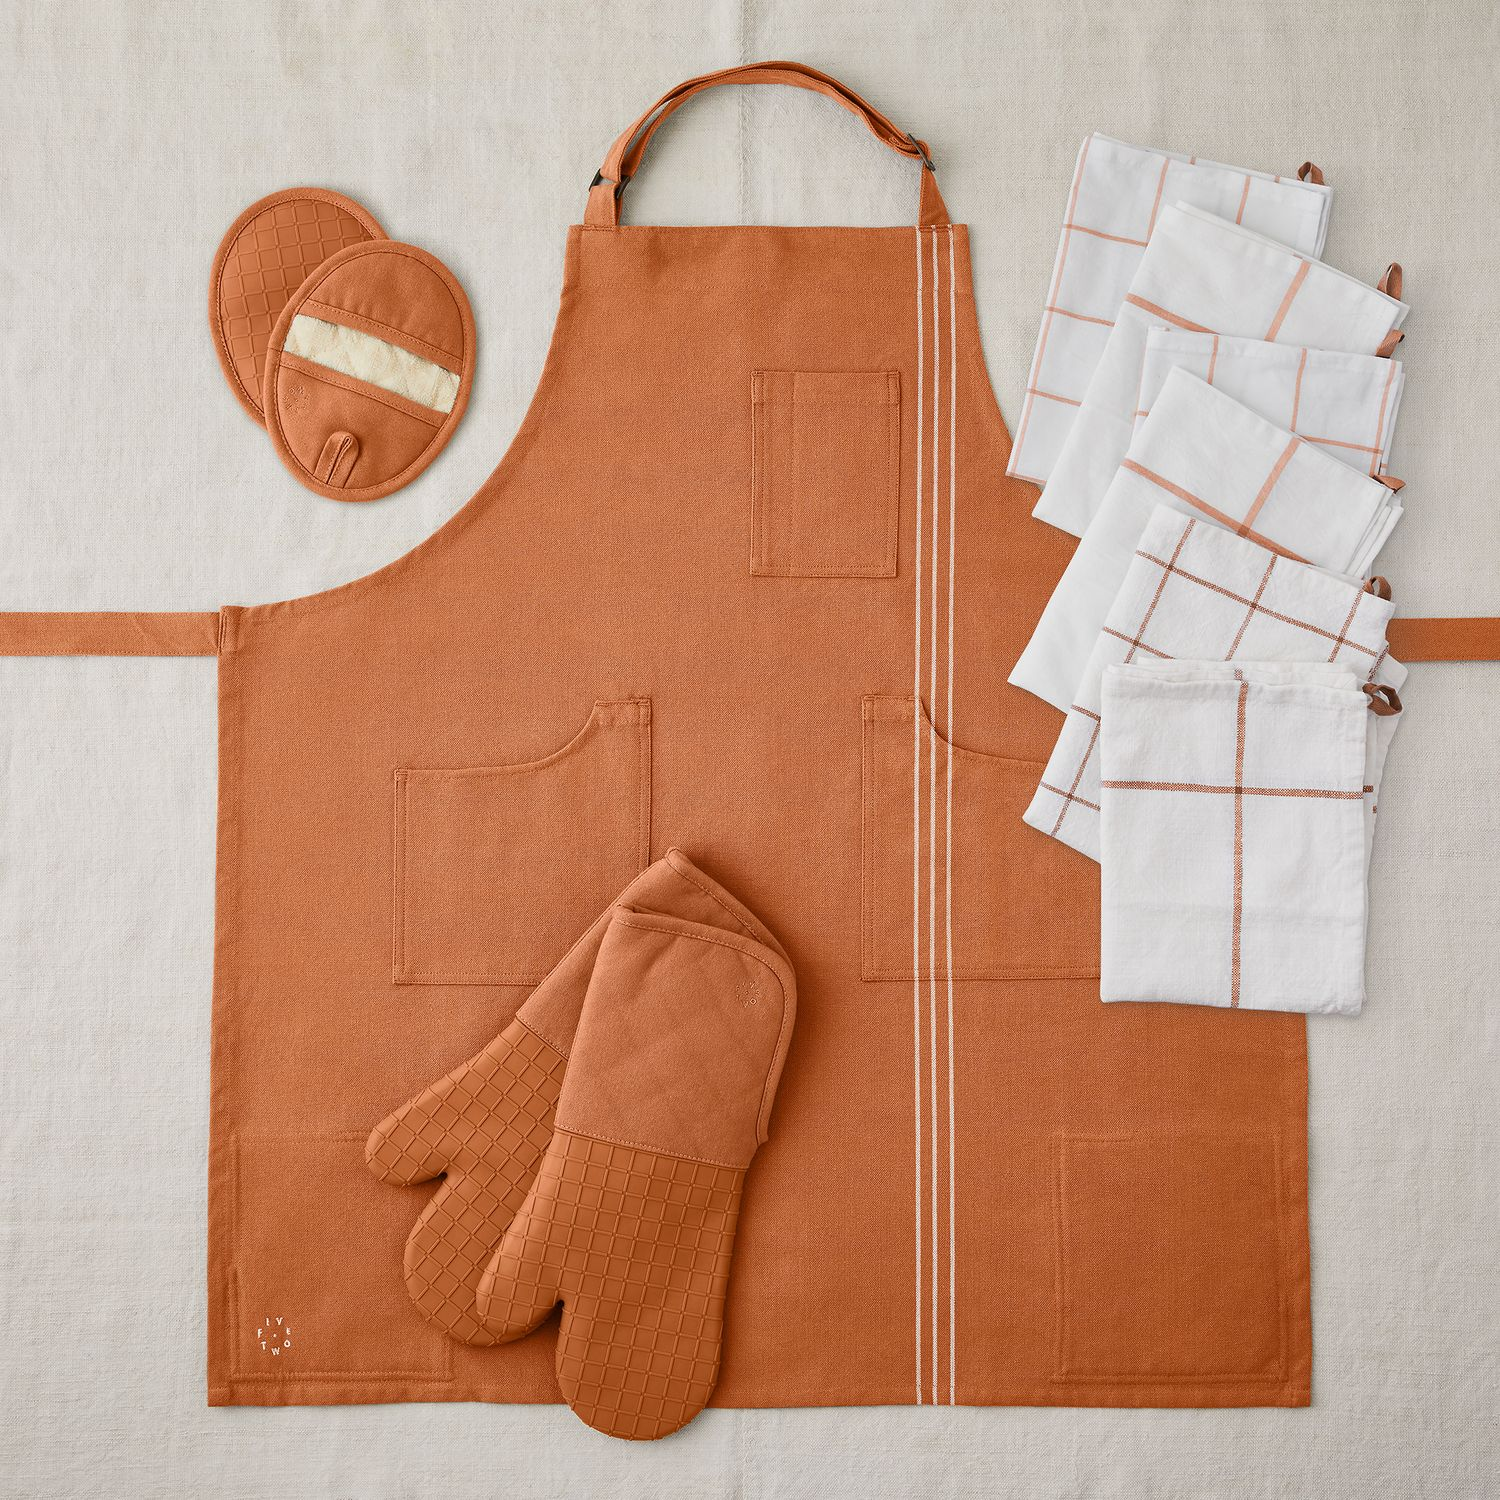 Five Two Silicone Oven Mitts Amp Pot Holders From Food52 On